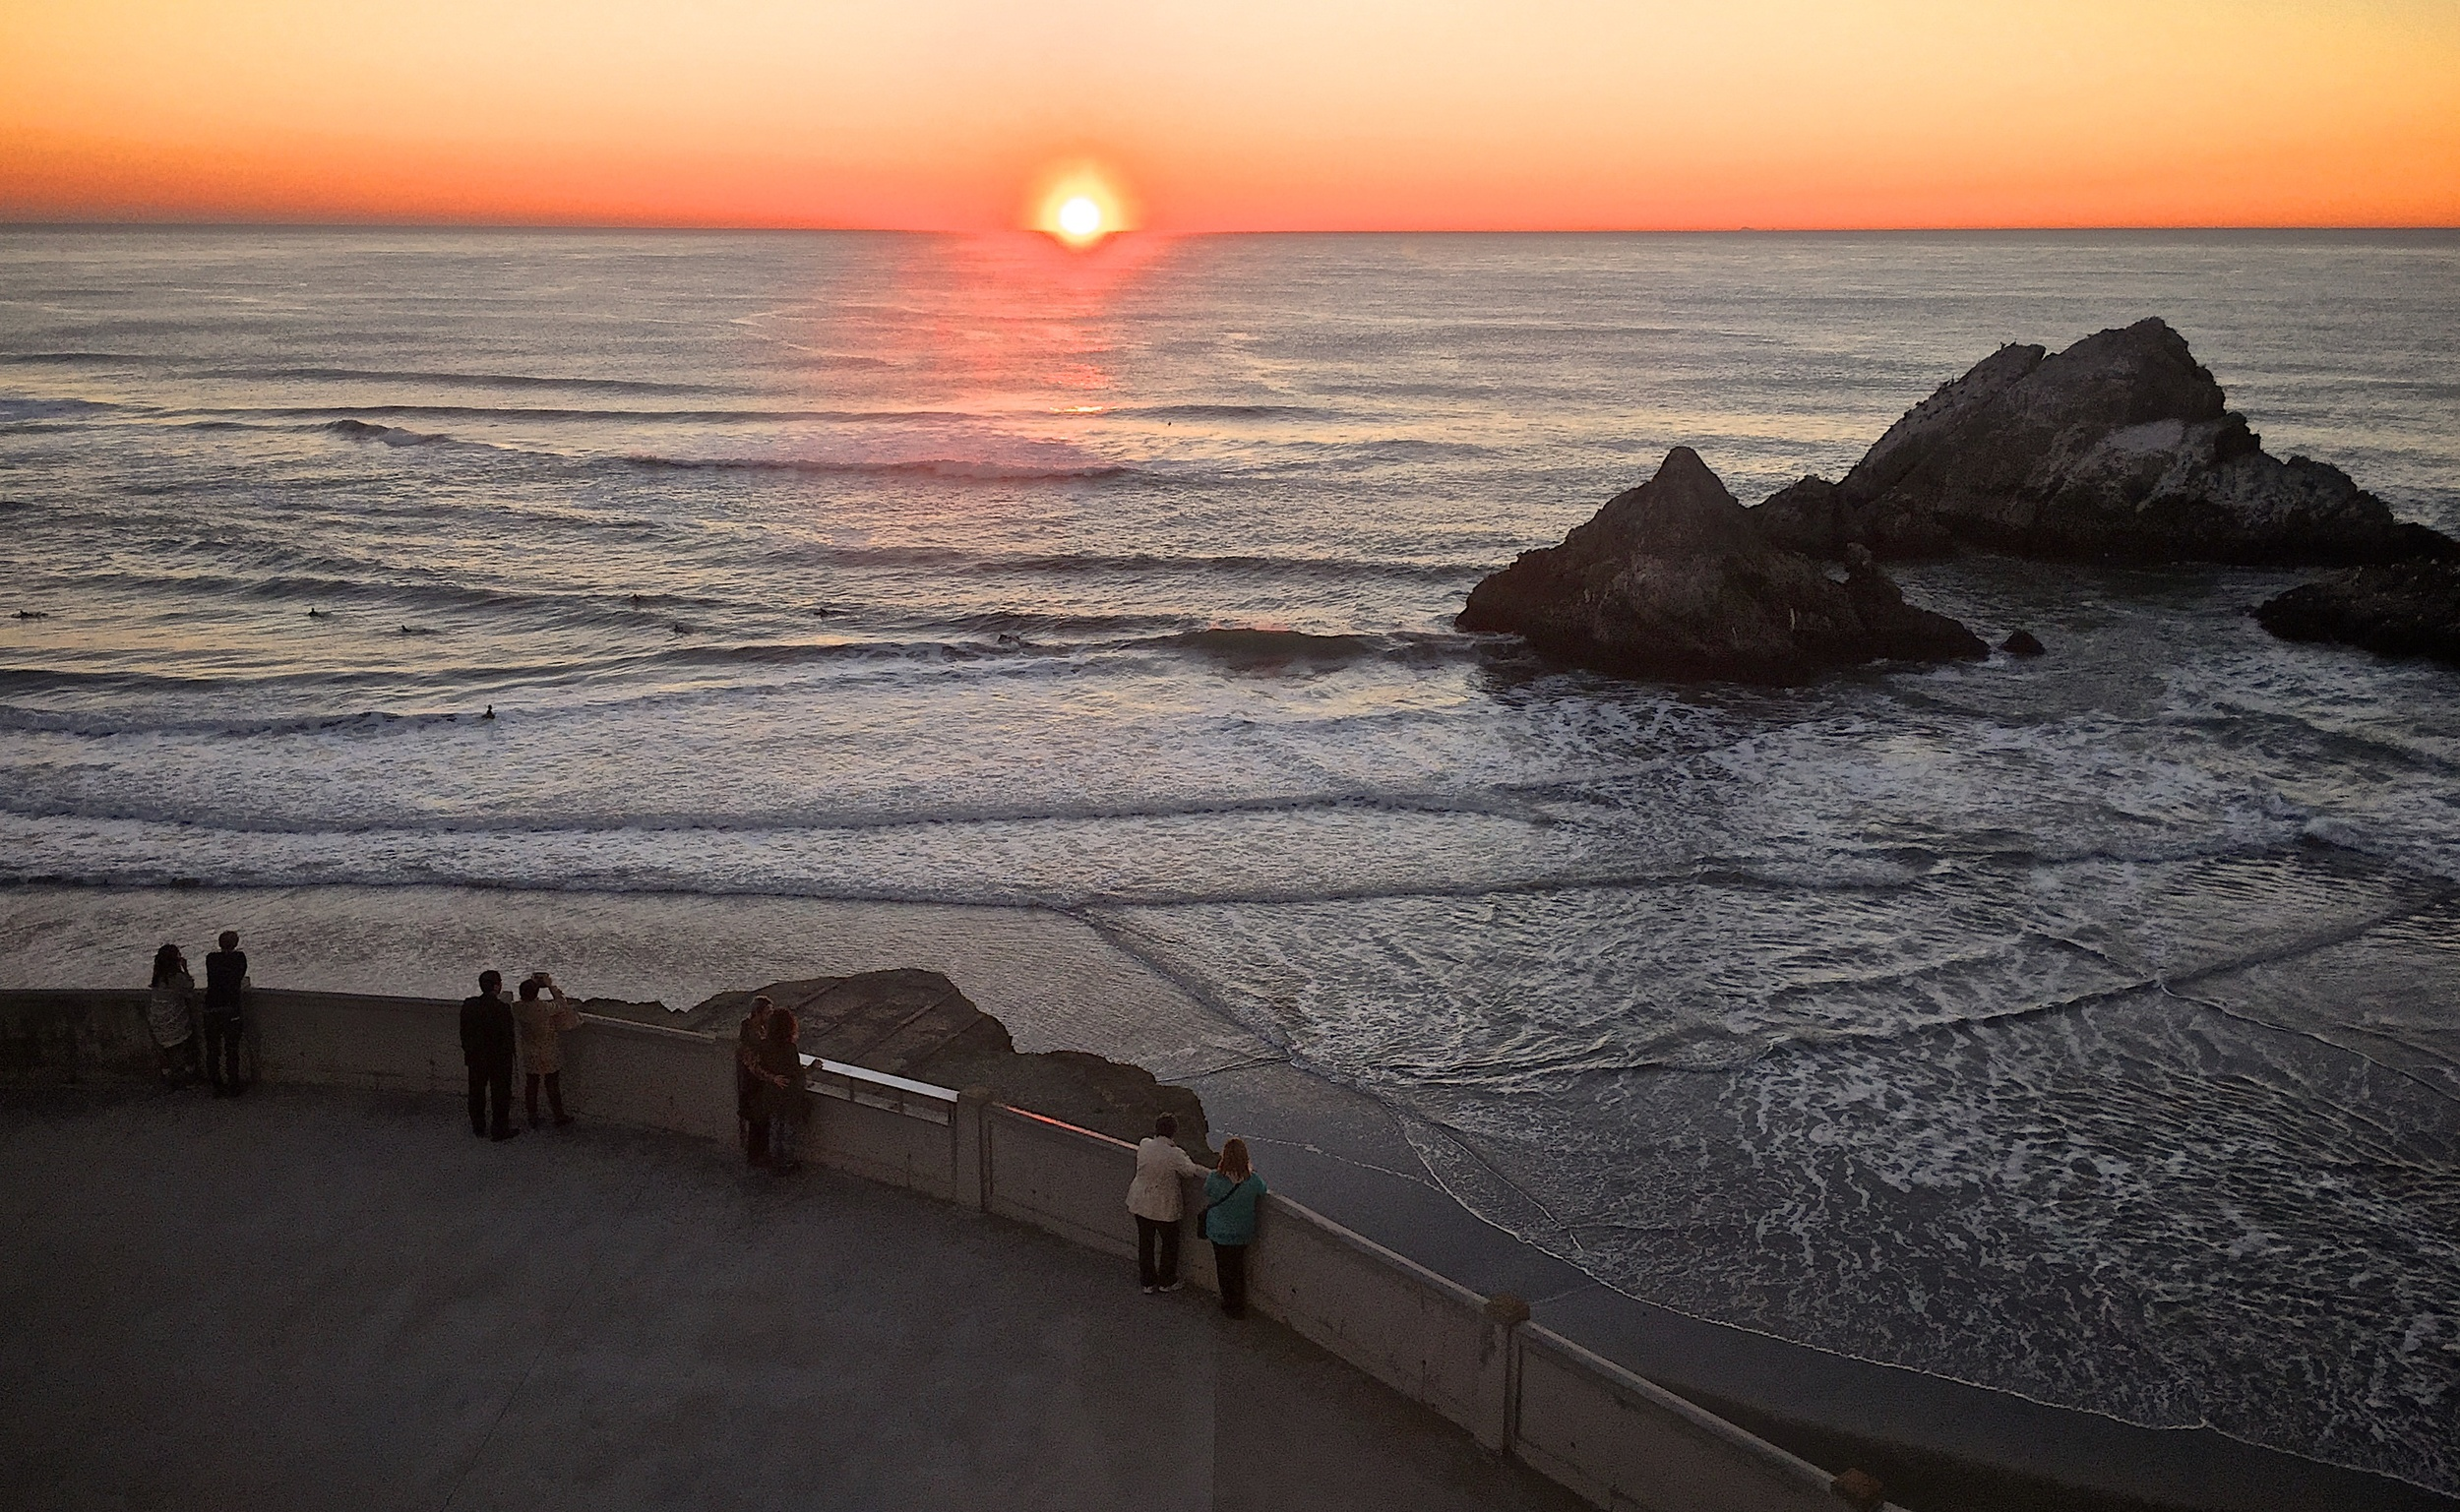 Lands End Trail: A Scenic San Francisco Walk ~ www.CompulsivelyQuirky.com